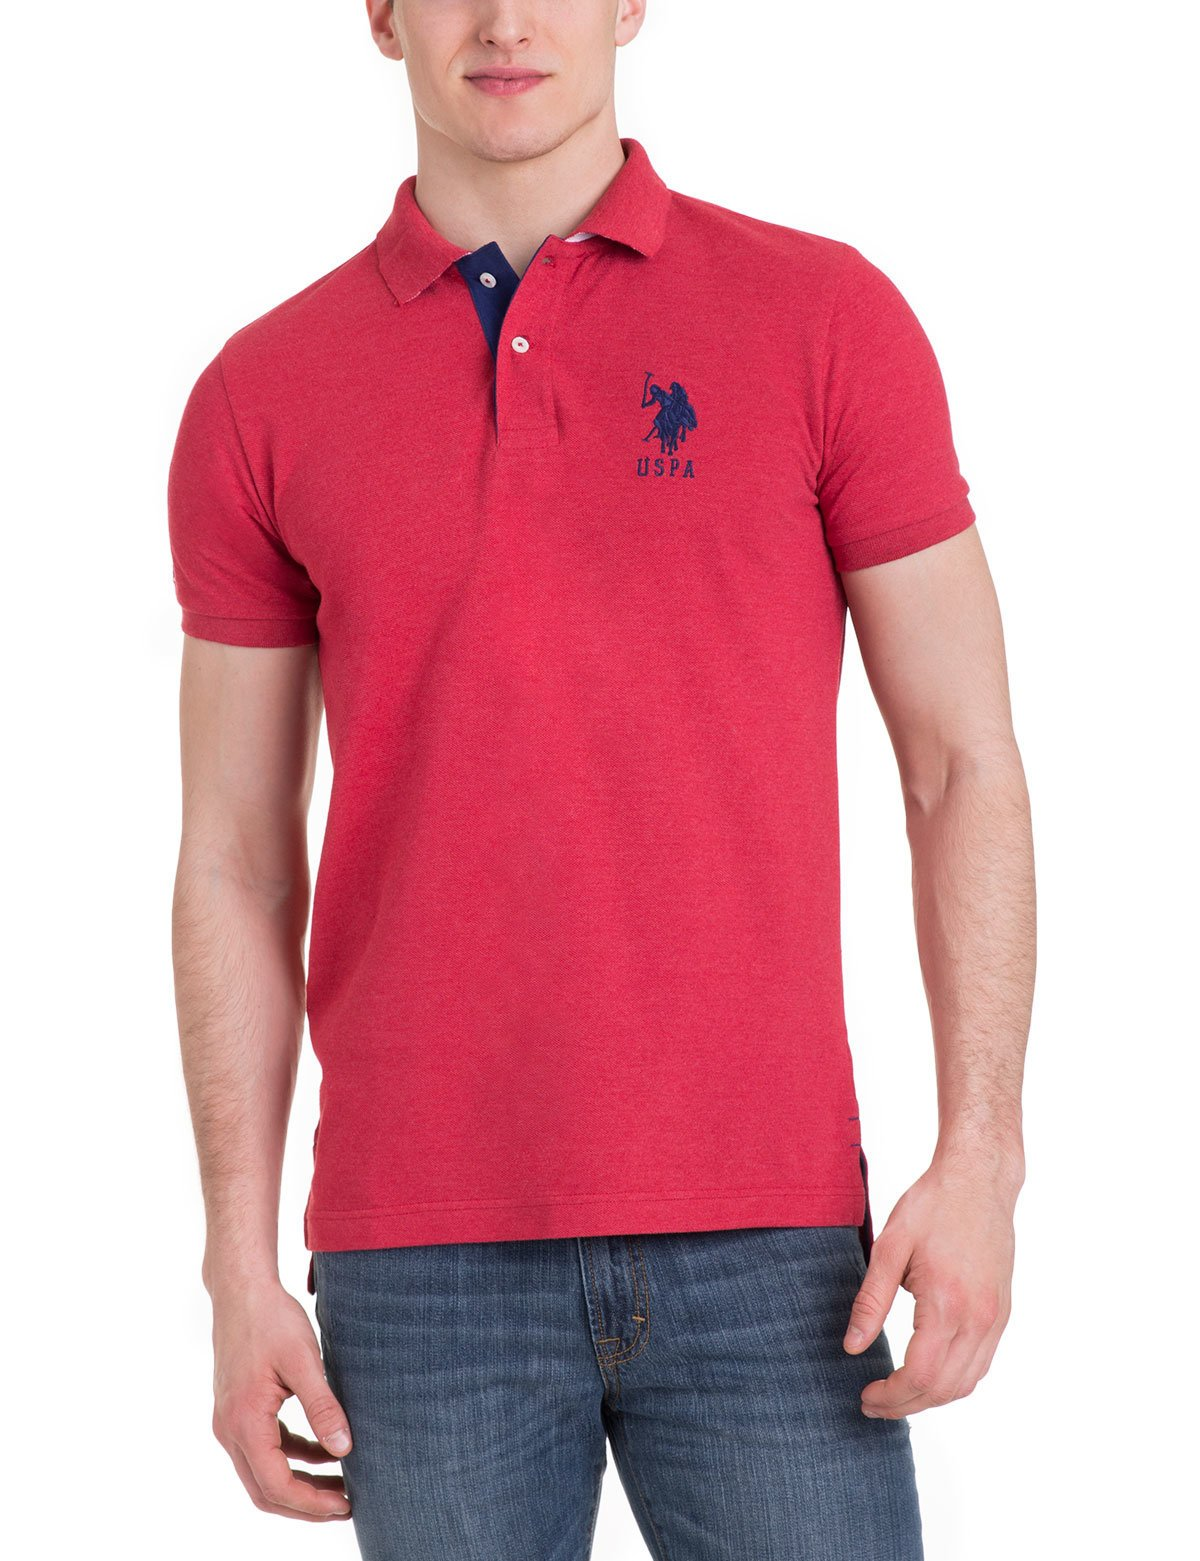 Slim Fit Pique Mesh Polo Shirt - U.S. Polo Assn.